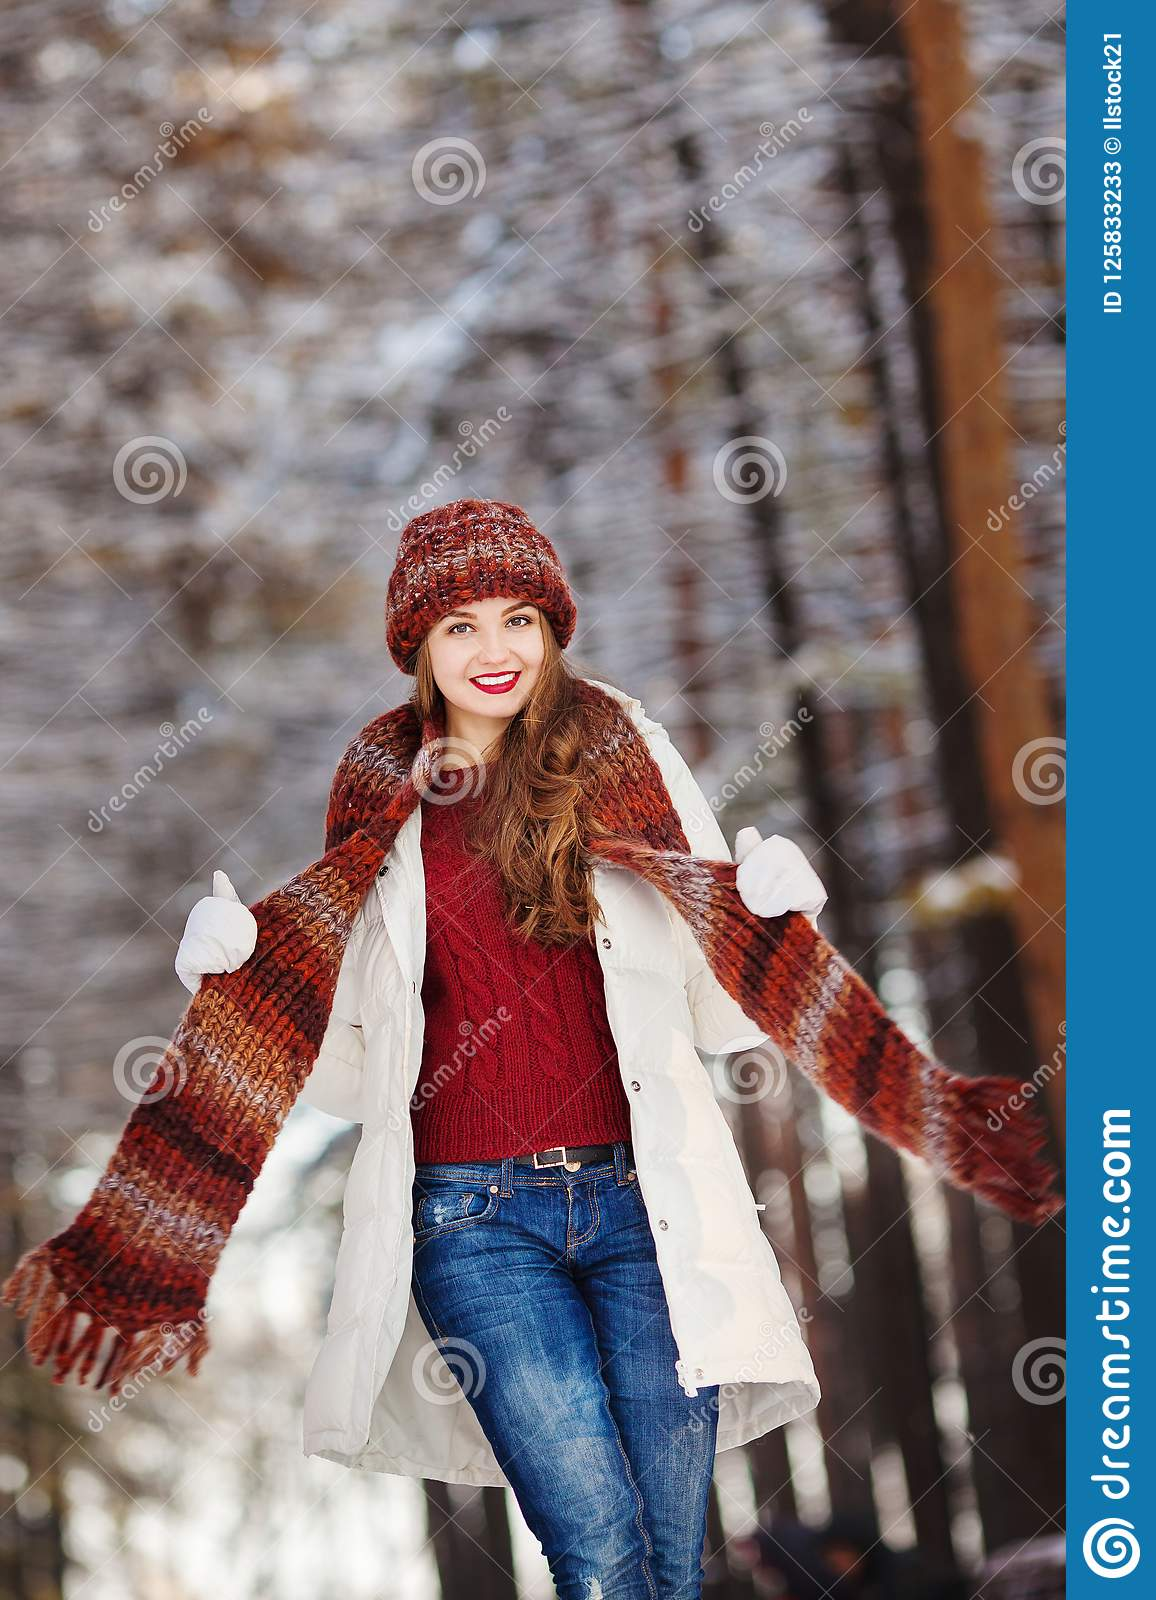 4432cd14bc50c Woman with long hair and knitted scarf, red sweater and hat, wearing white  coat with makeup on the face posing in winter forest with trees on  background